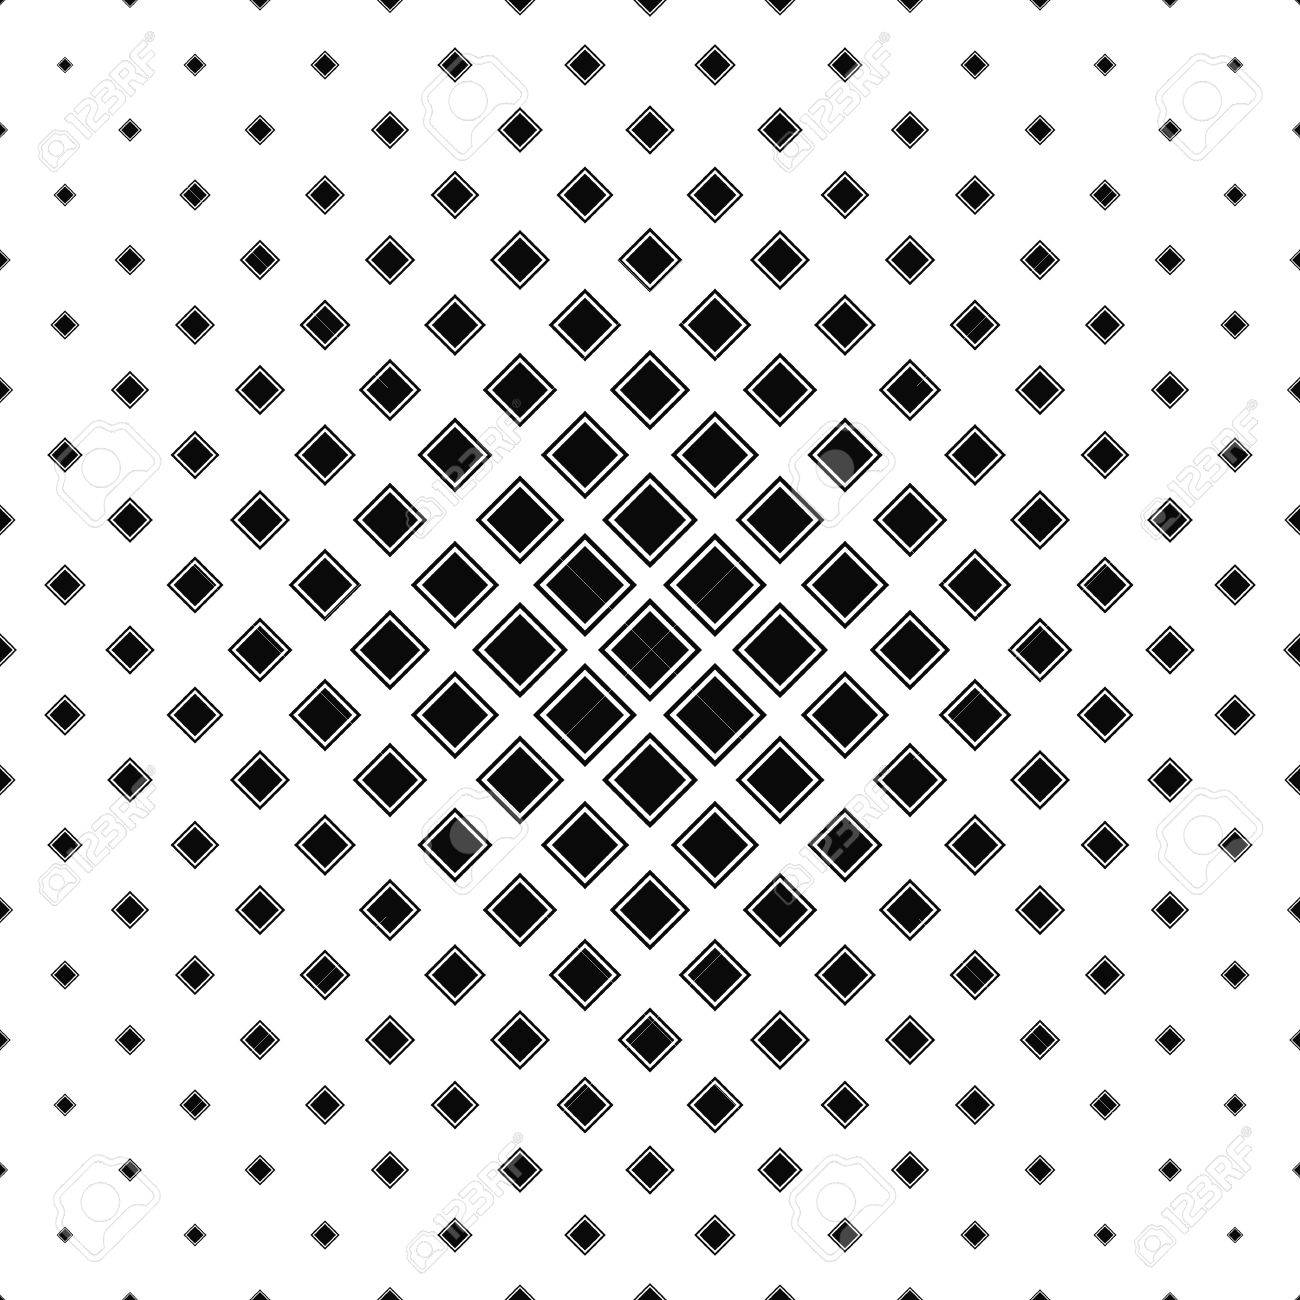 Repeating Black White Abstract Square Pattern Design Background Royalty Free Cliparts Vectors And Stock Illustration Image 55176781